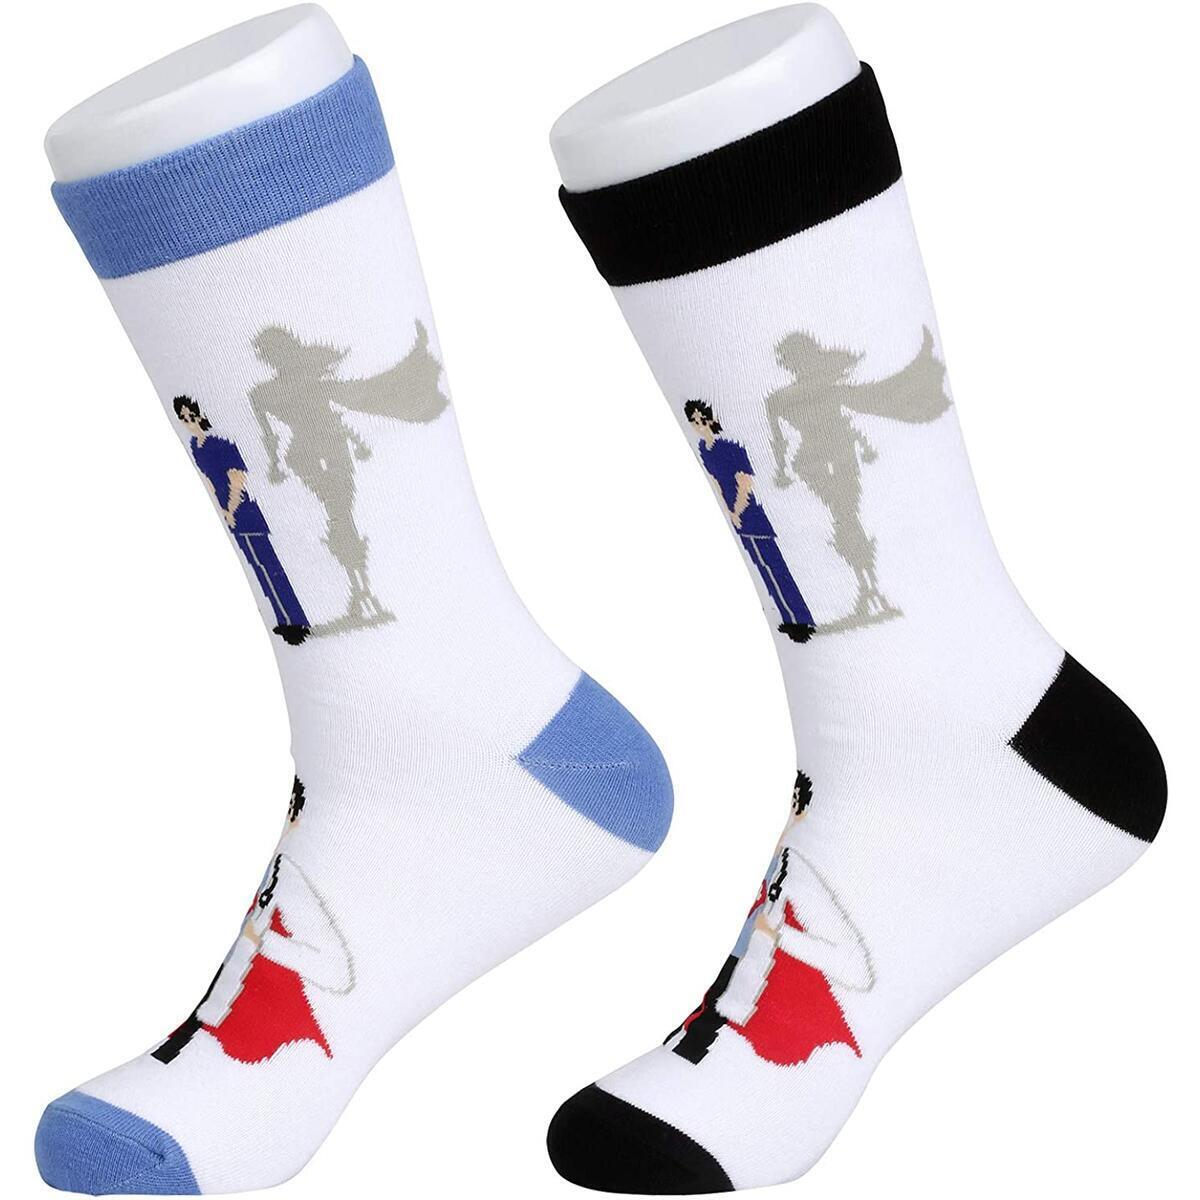 Medical Hero Doctor Nurse Technician Aid Novelty Socks Unisex, 2 pair